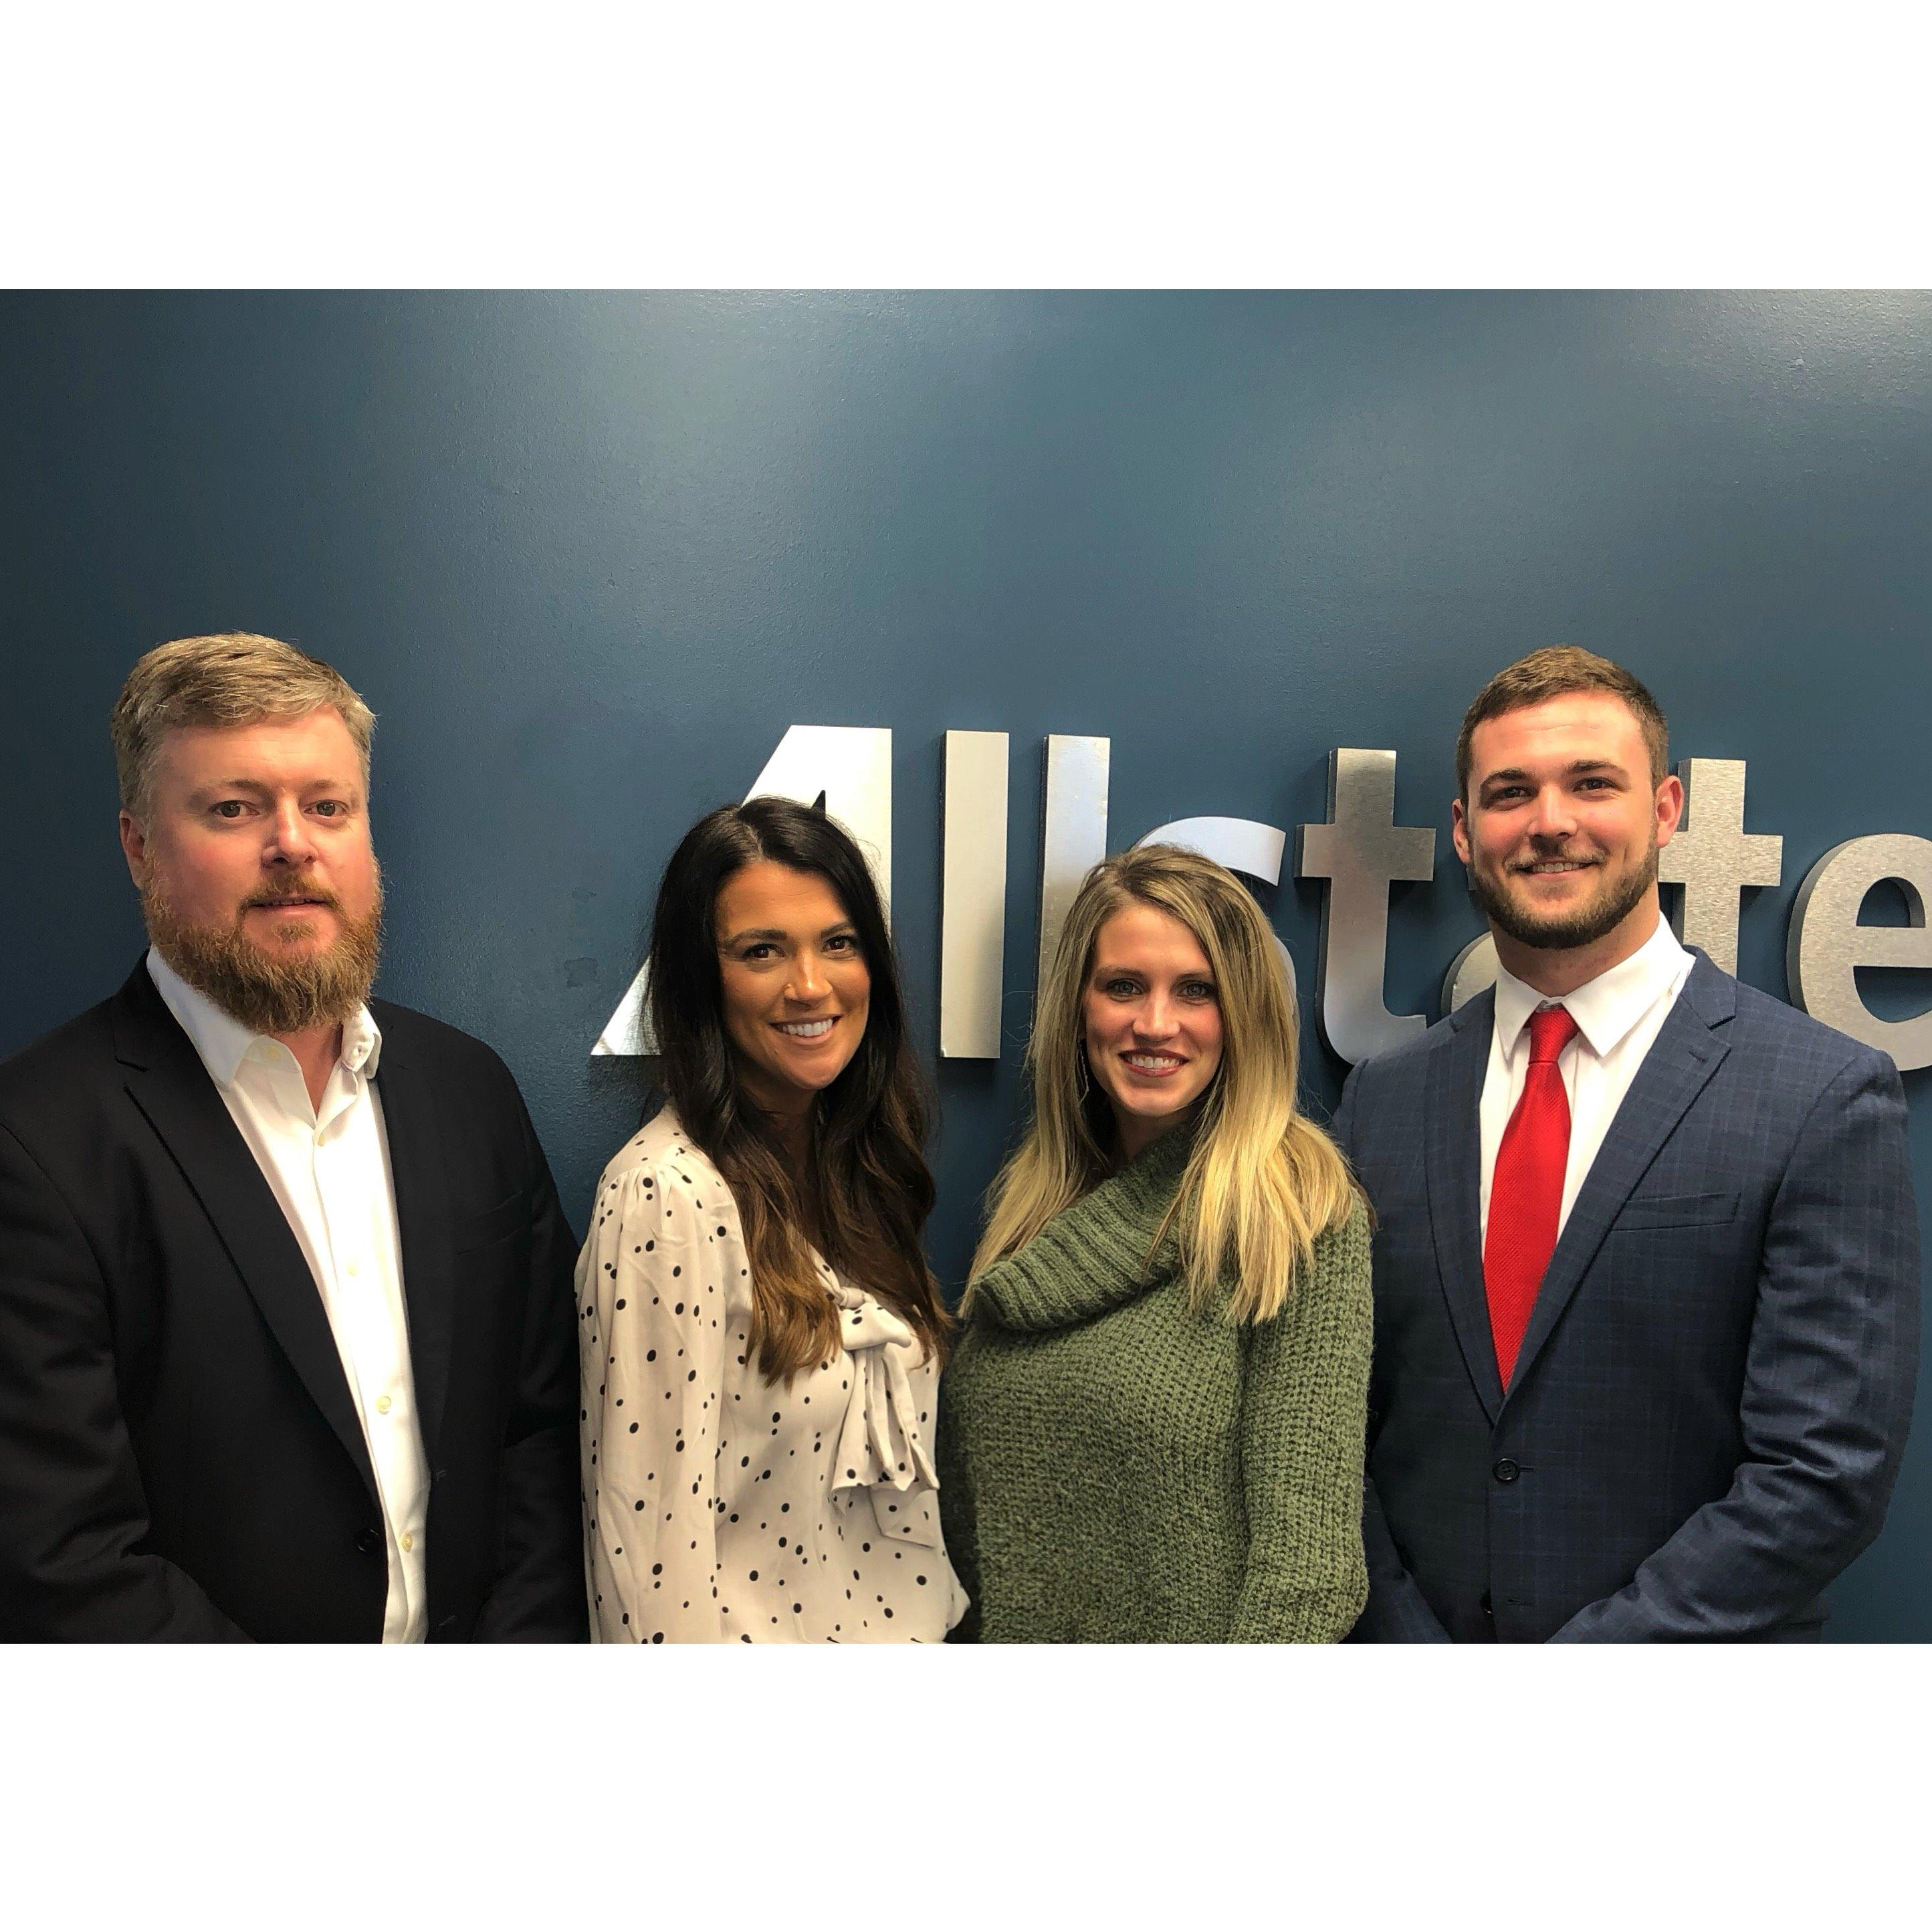 From left to right: Agency Owner- Shaw Nickels; Licensed Life & Property/Causality Agent- Jade Gaskin; Licensed Property/Causality Agent- Catherine Anderson Smith; Licensed Life & Property/Causality Agent- Chase Domino.